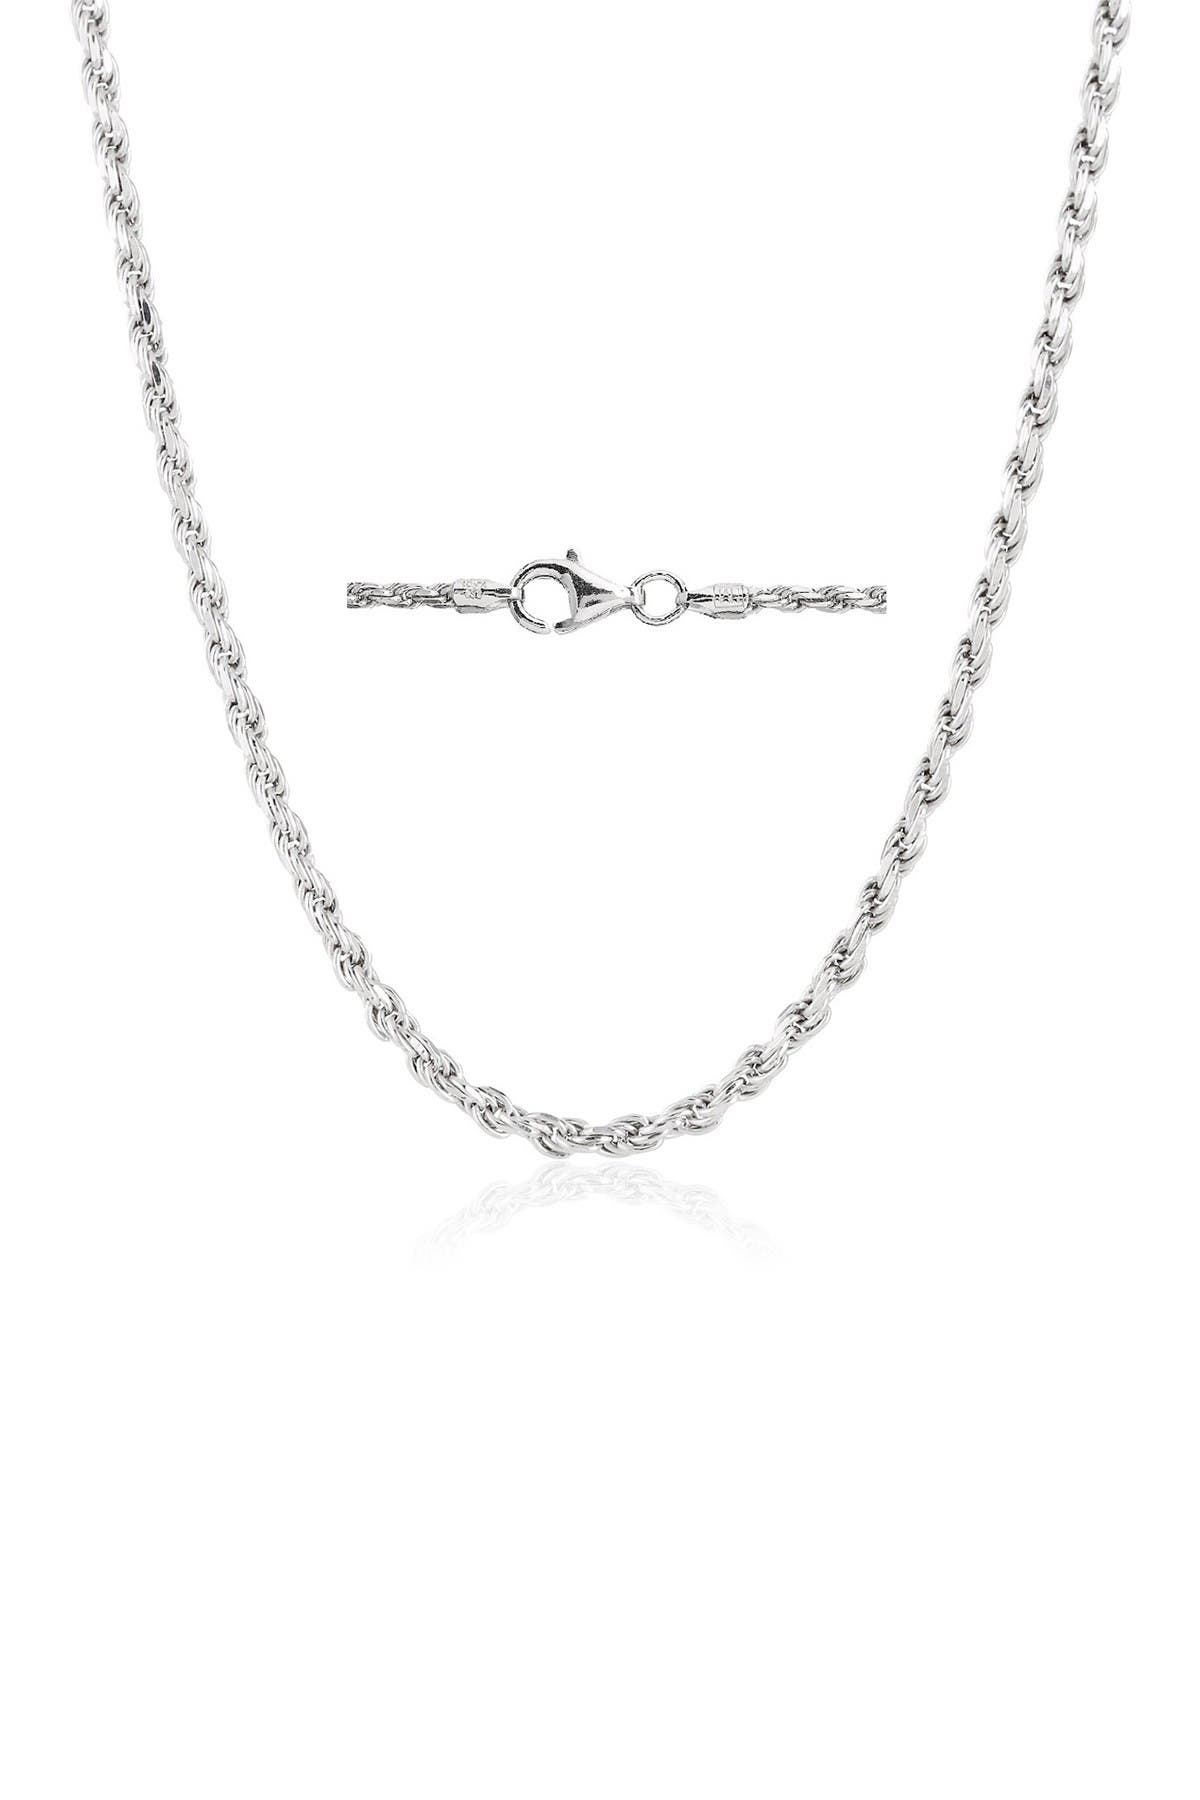 """Image of Best Silver Inc. Sterling Silver Rope Chain 18"""""""